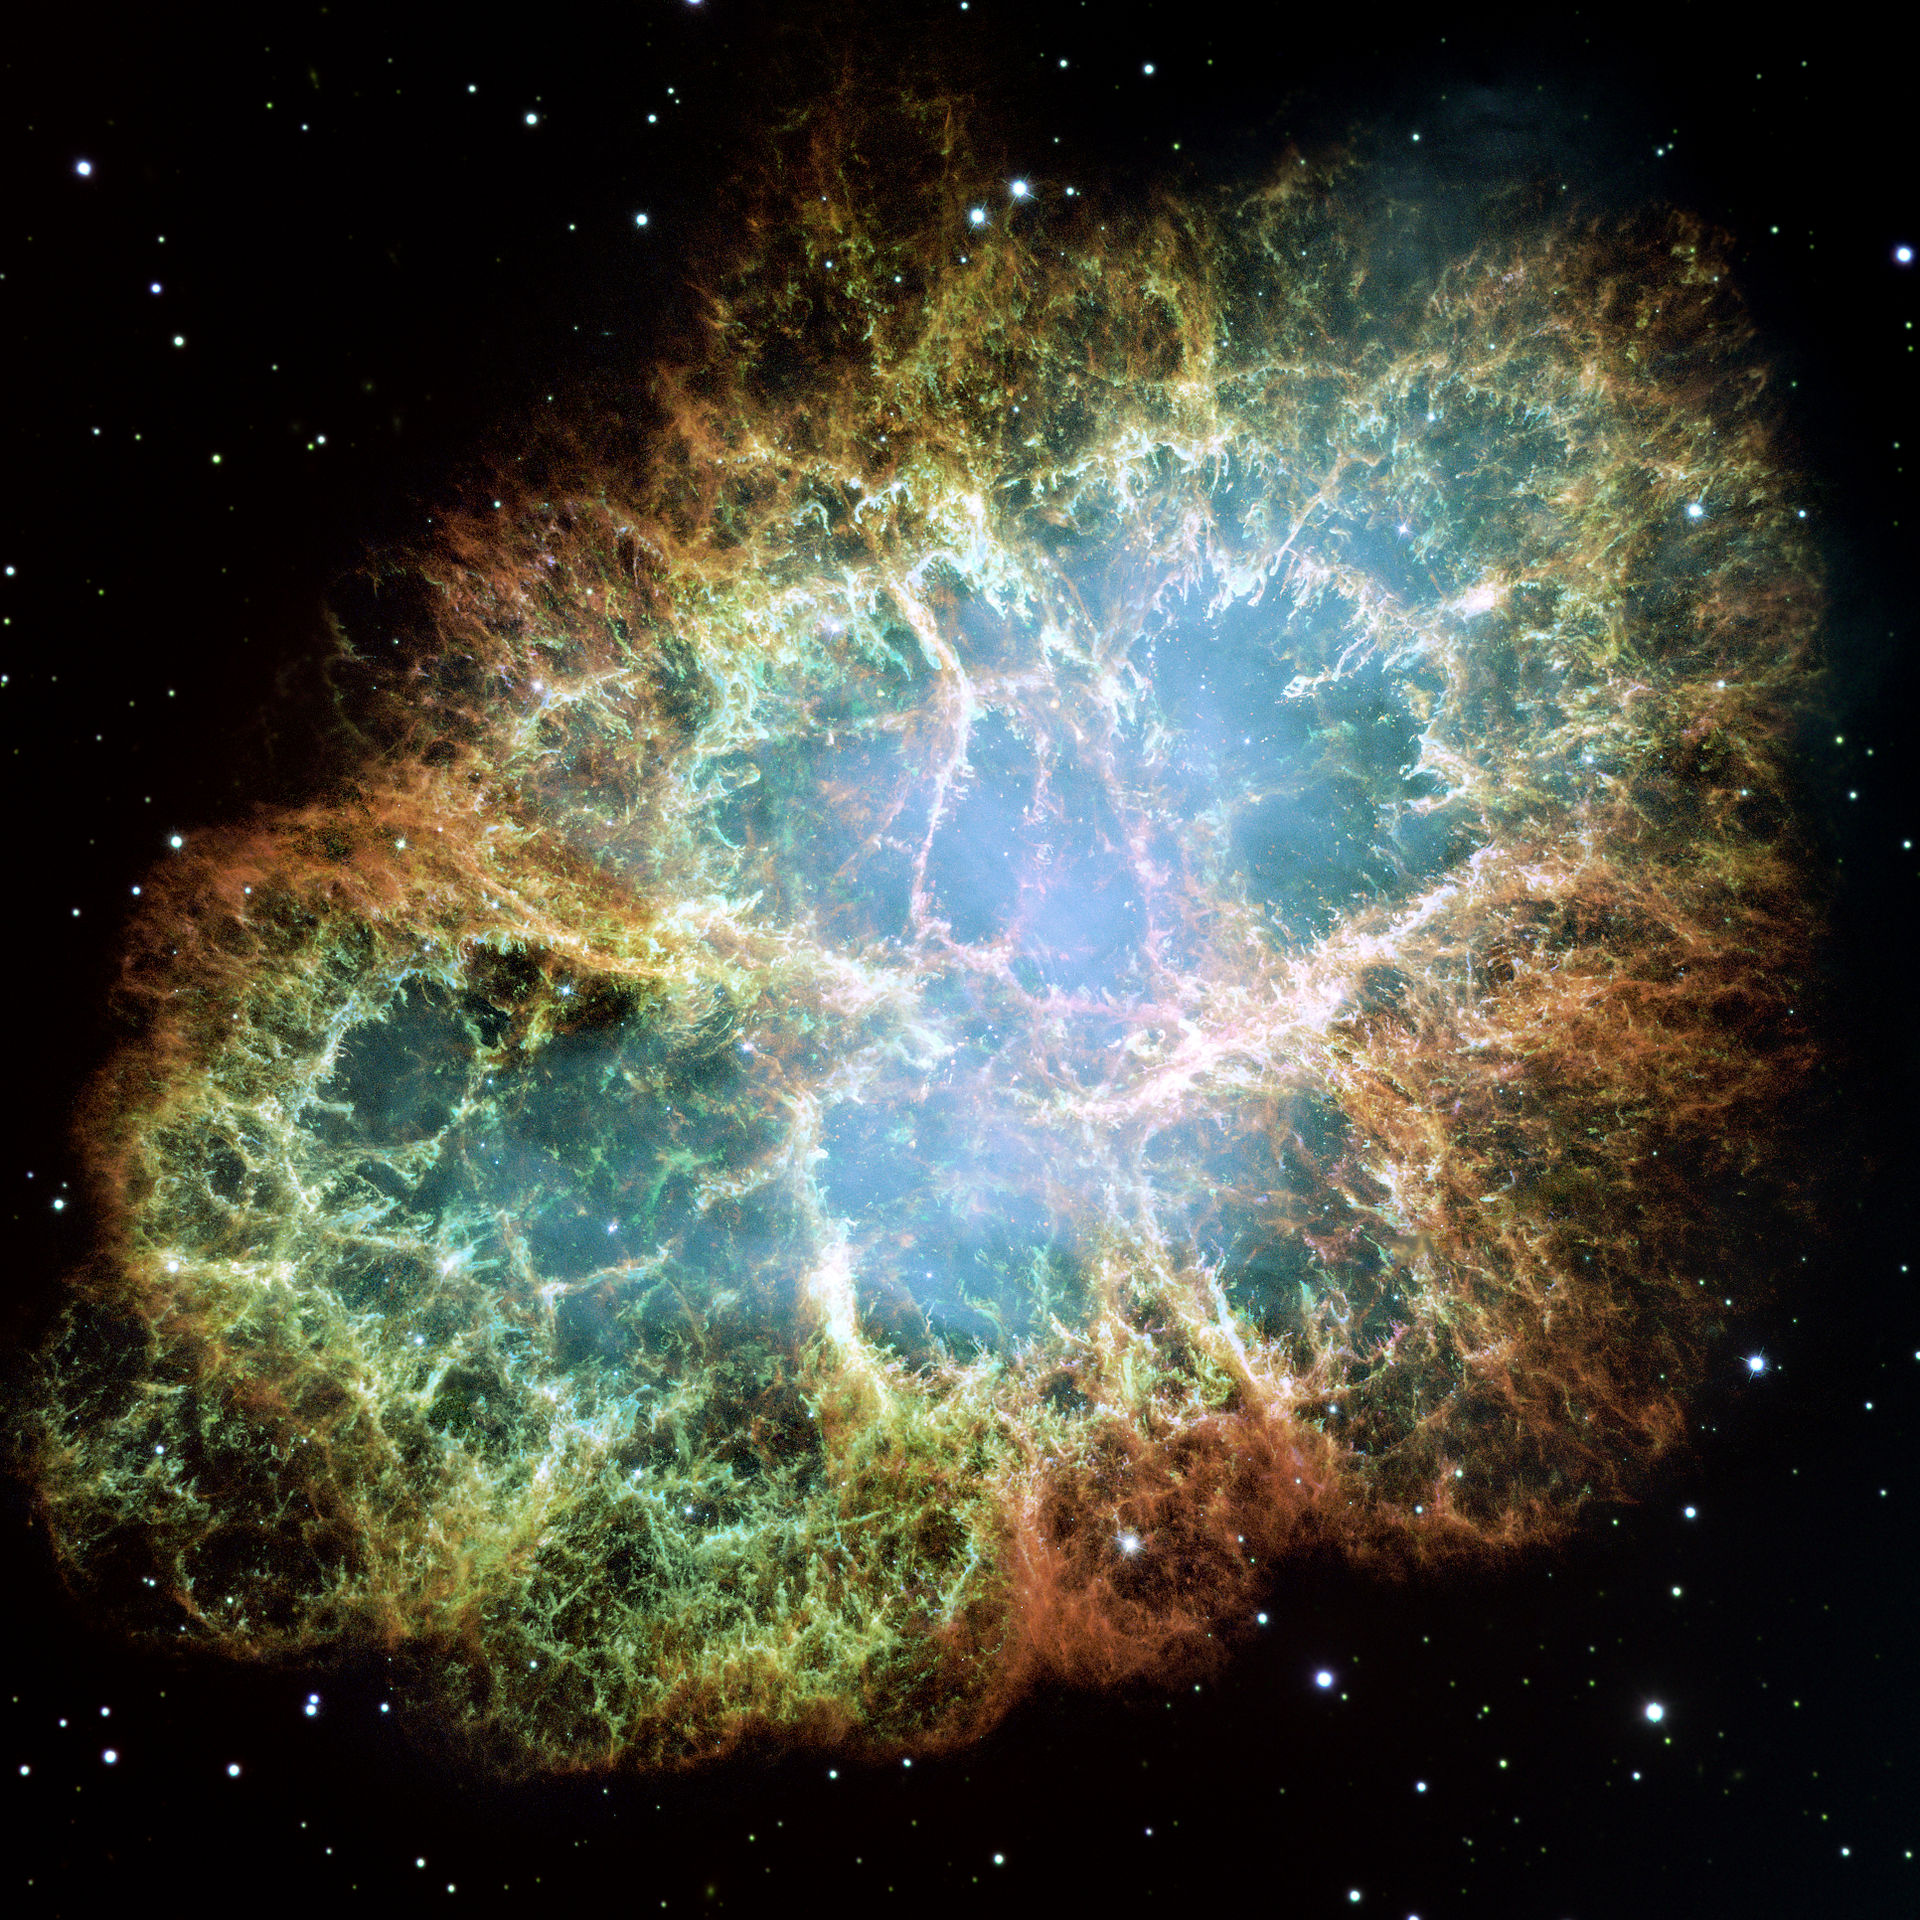 Hubble Telescopes Discoveries Hubble Space Telescope of